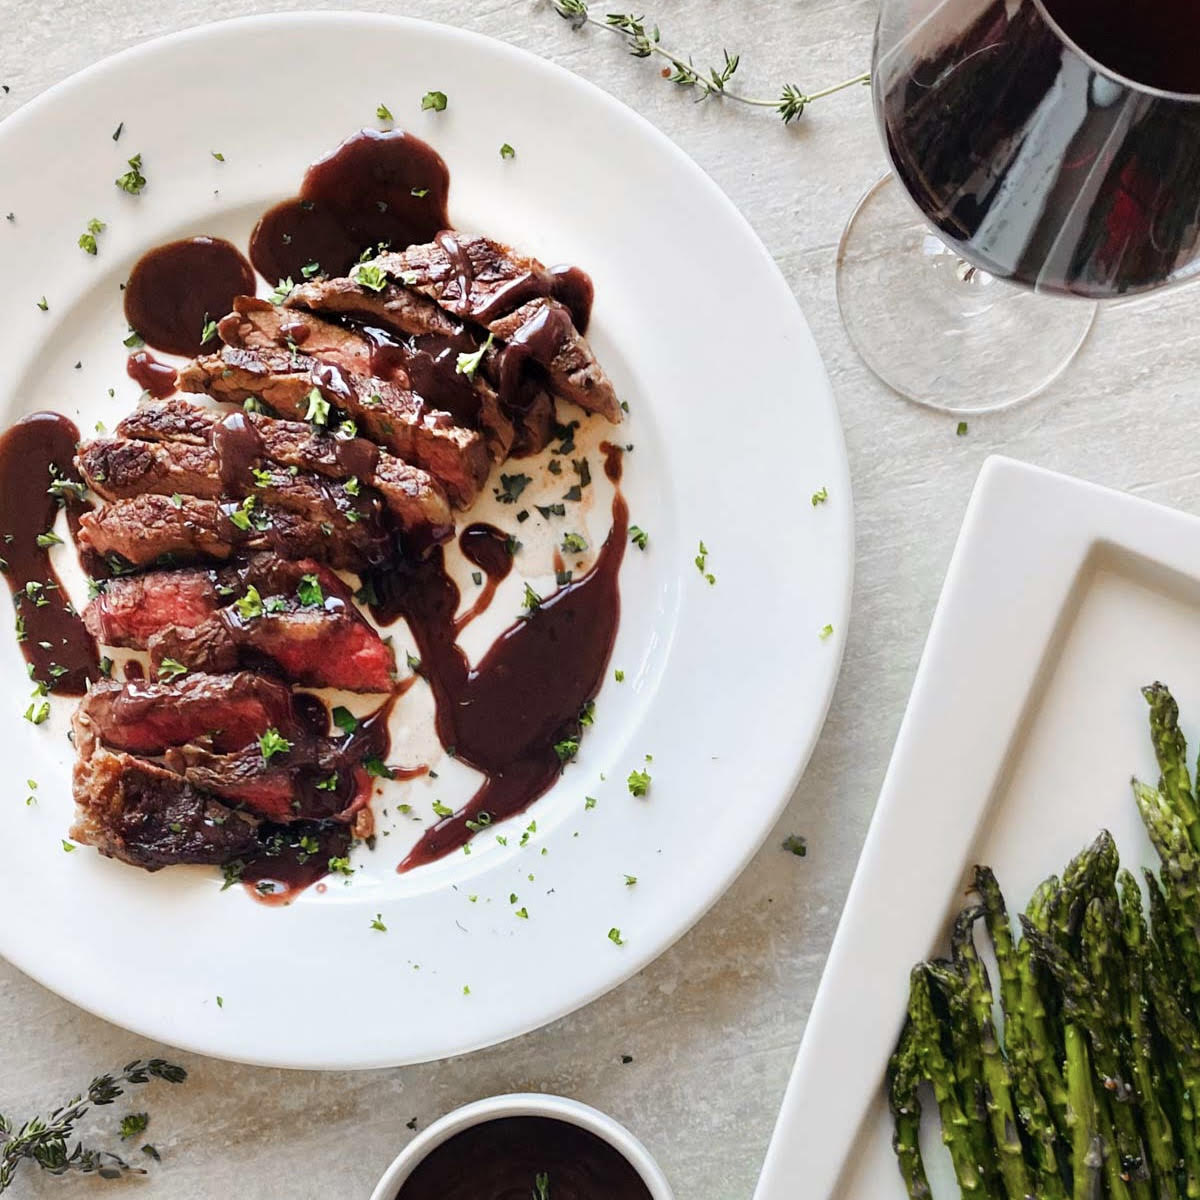 wagyu ribeye steak covered in wagyu bacon bordelaise sauce next to glass of red wine and asparagus